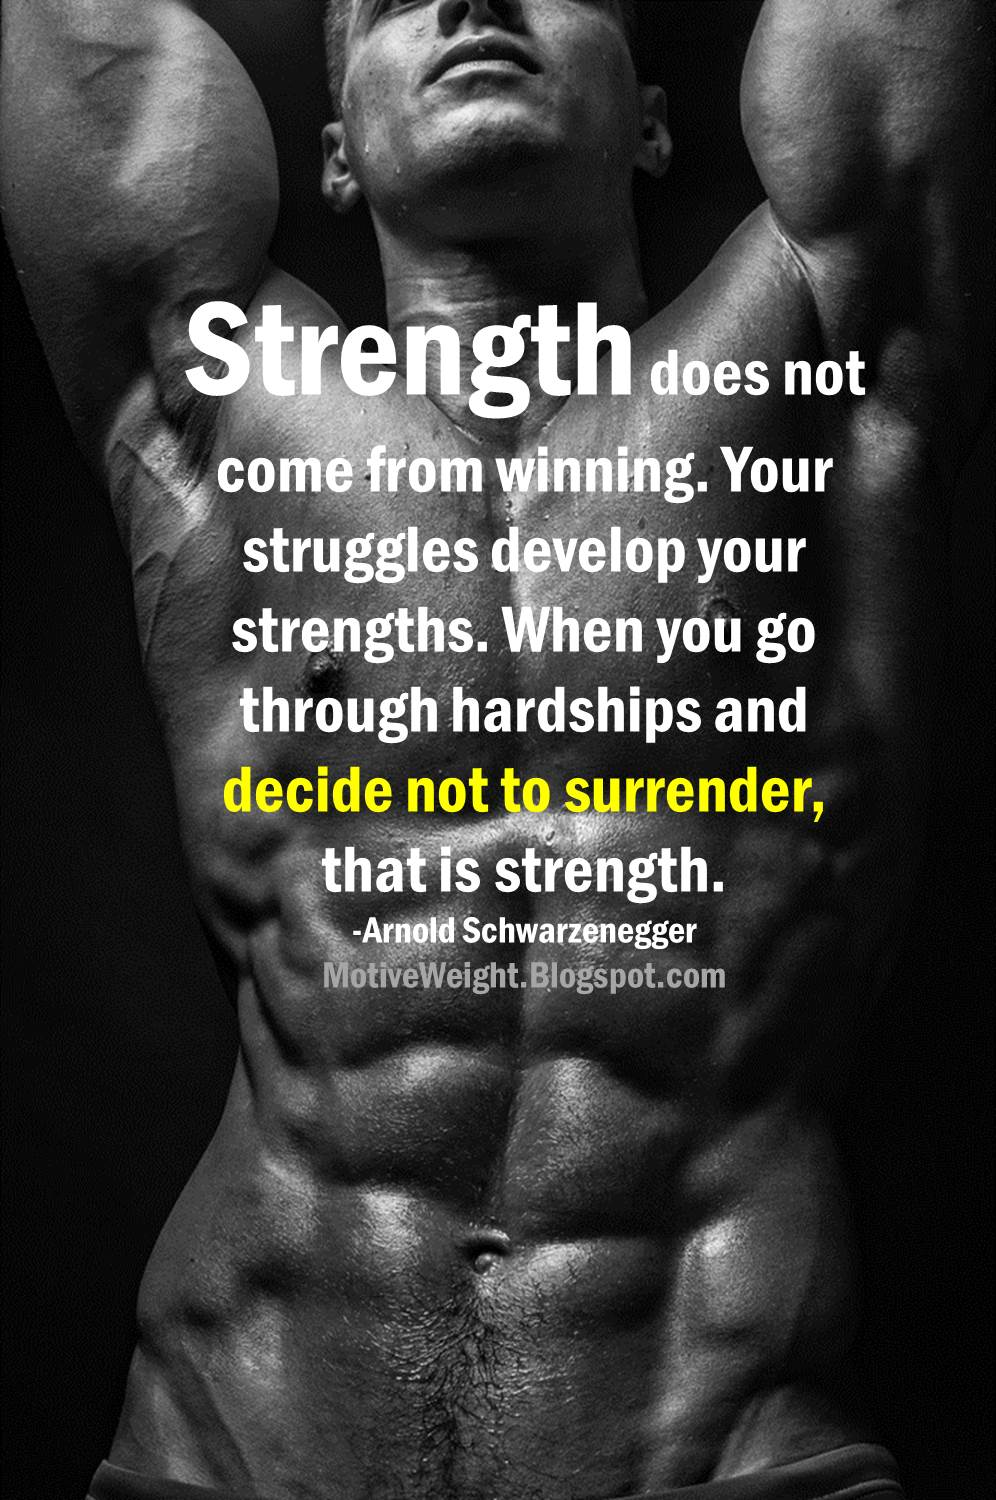 motiveweight your struggles develop your strengths your struggles develop your strengths